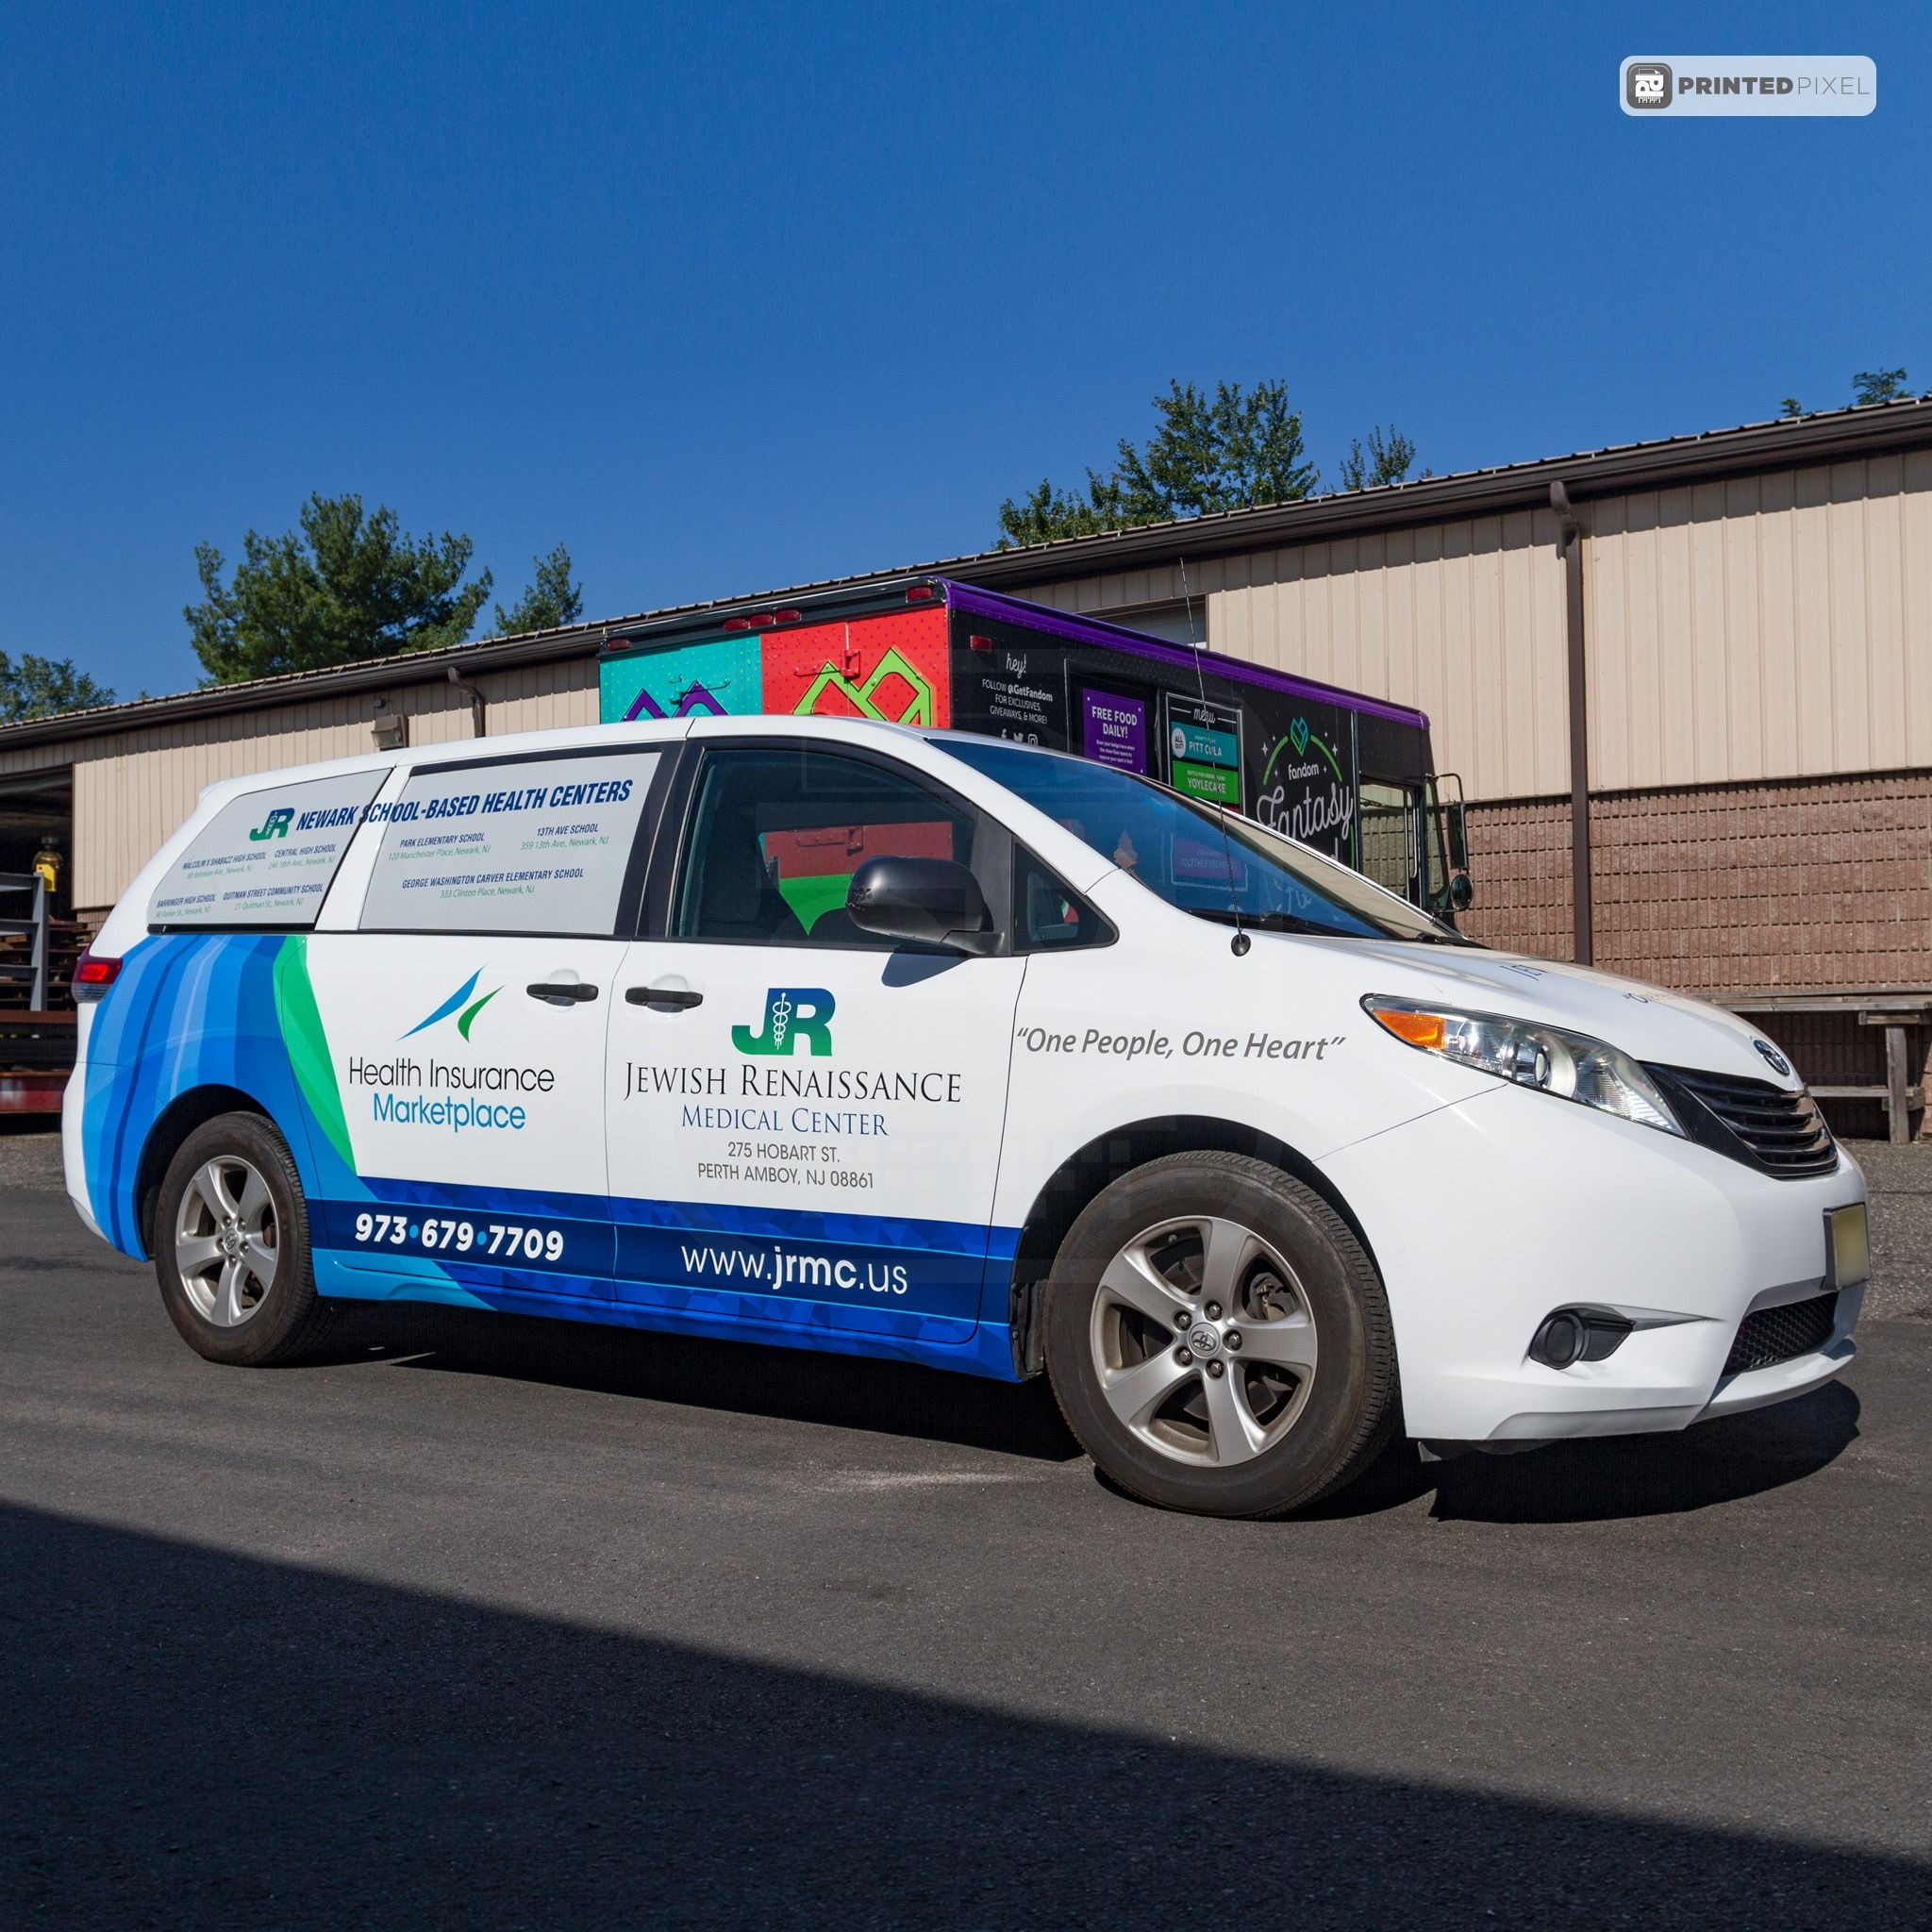 Toyota Sienna Van Wrap For The Jrmc And Their New Branding